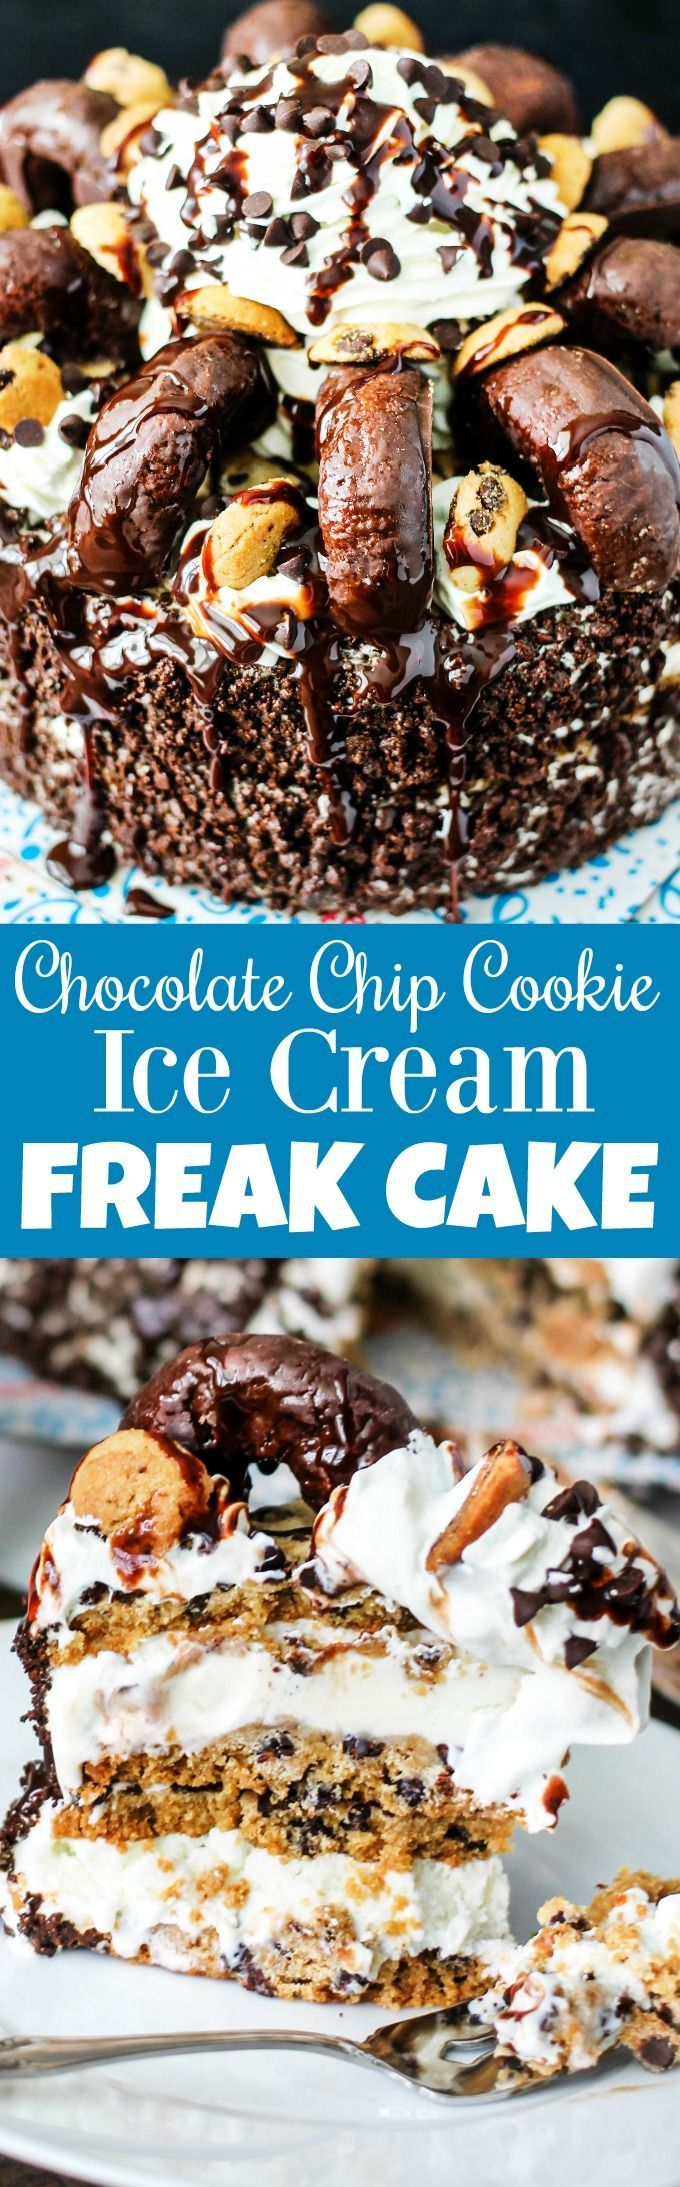 Chocolate Chip Cookie Ice Cream FREAK Cake is the ULTIMATE DESSERT! All of the above plus mini cookies, donuts, chocolate syrup, and whipped cream! #SummerCakeBreak #ad